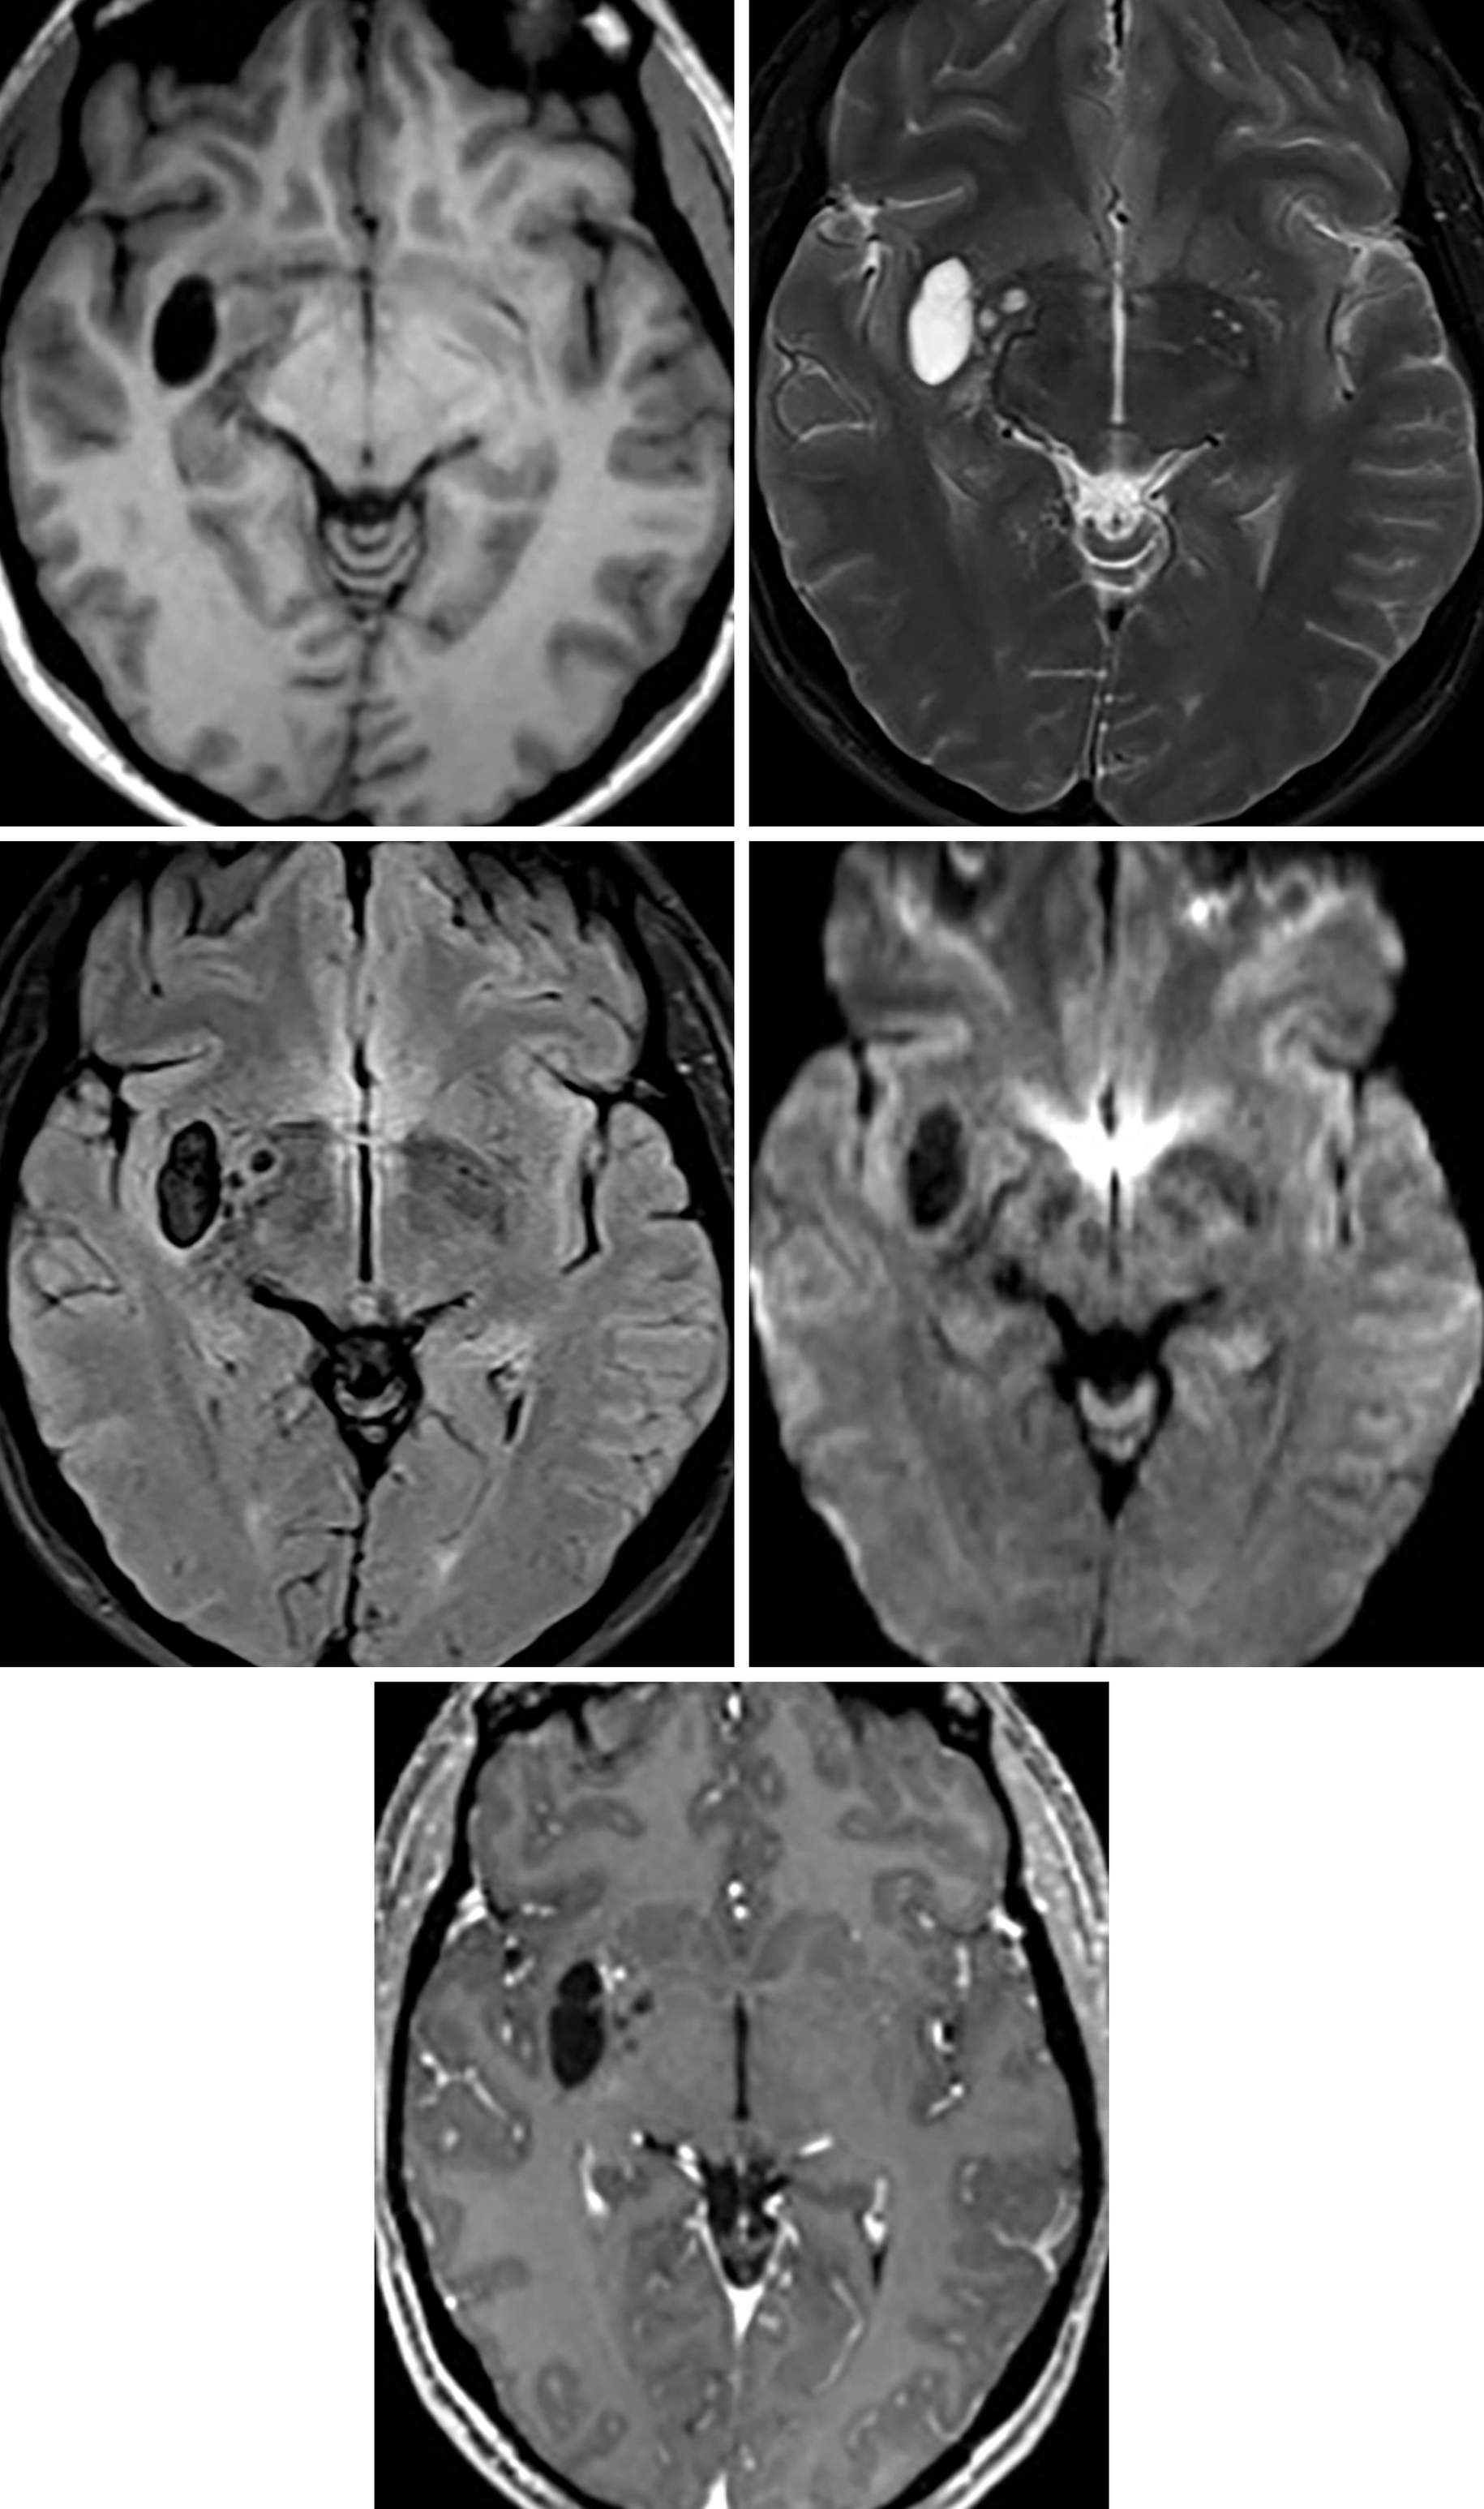 Figure 1: Large, oval structure within the right putamen that follows CSF signal intensity on T1 (top row left), T2 (top row right), FLAIR (middle row left) and DWI (middle row right). Notice that there are a few additional similar-appearing smaller cystic structures medially, also representing dilated perivascular spaces. There is no significant adjacent FLAIR signal abnormality (middle row left) or enhancement (bottom row) to suggest an alternative diagnosis.